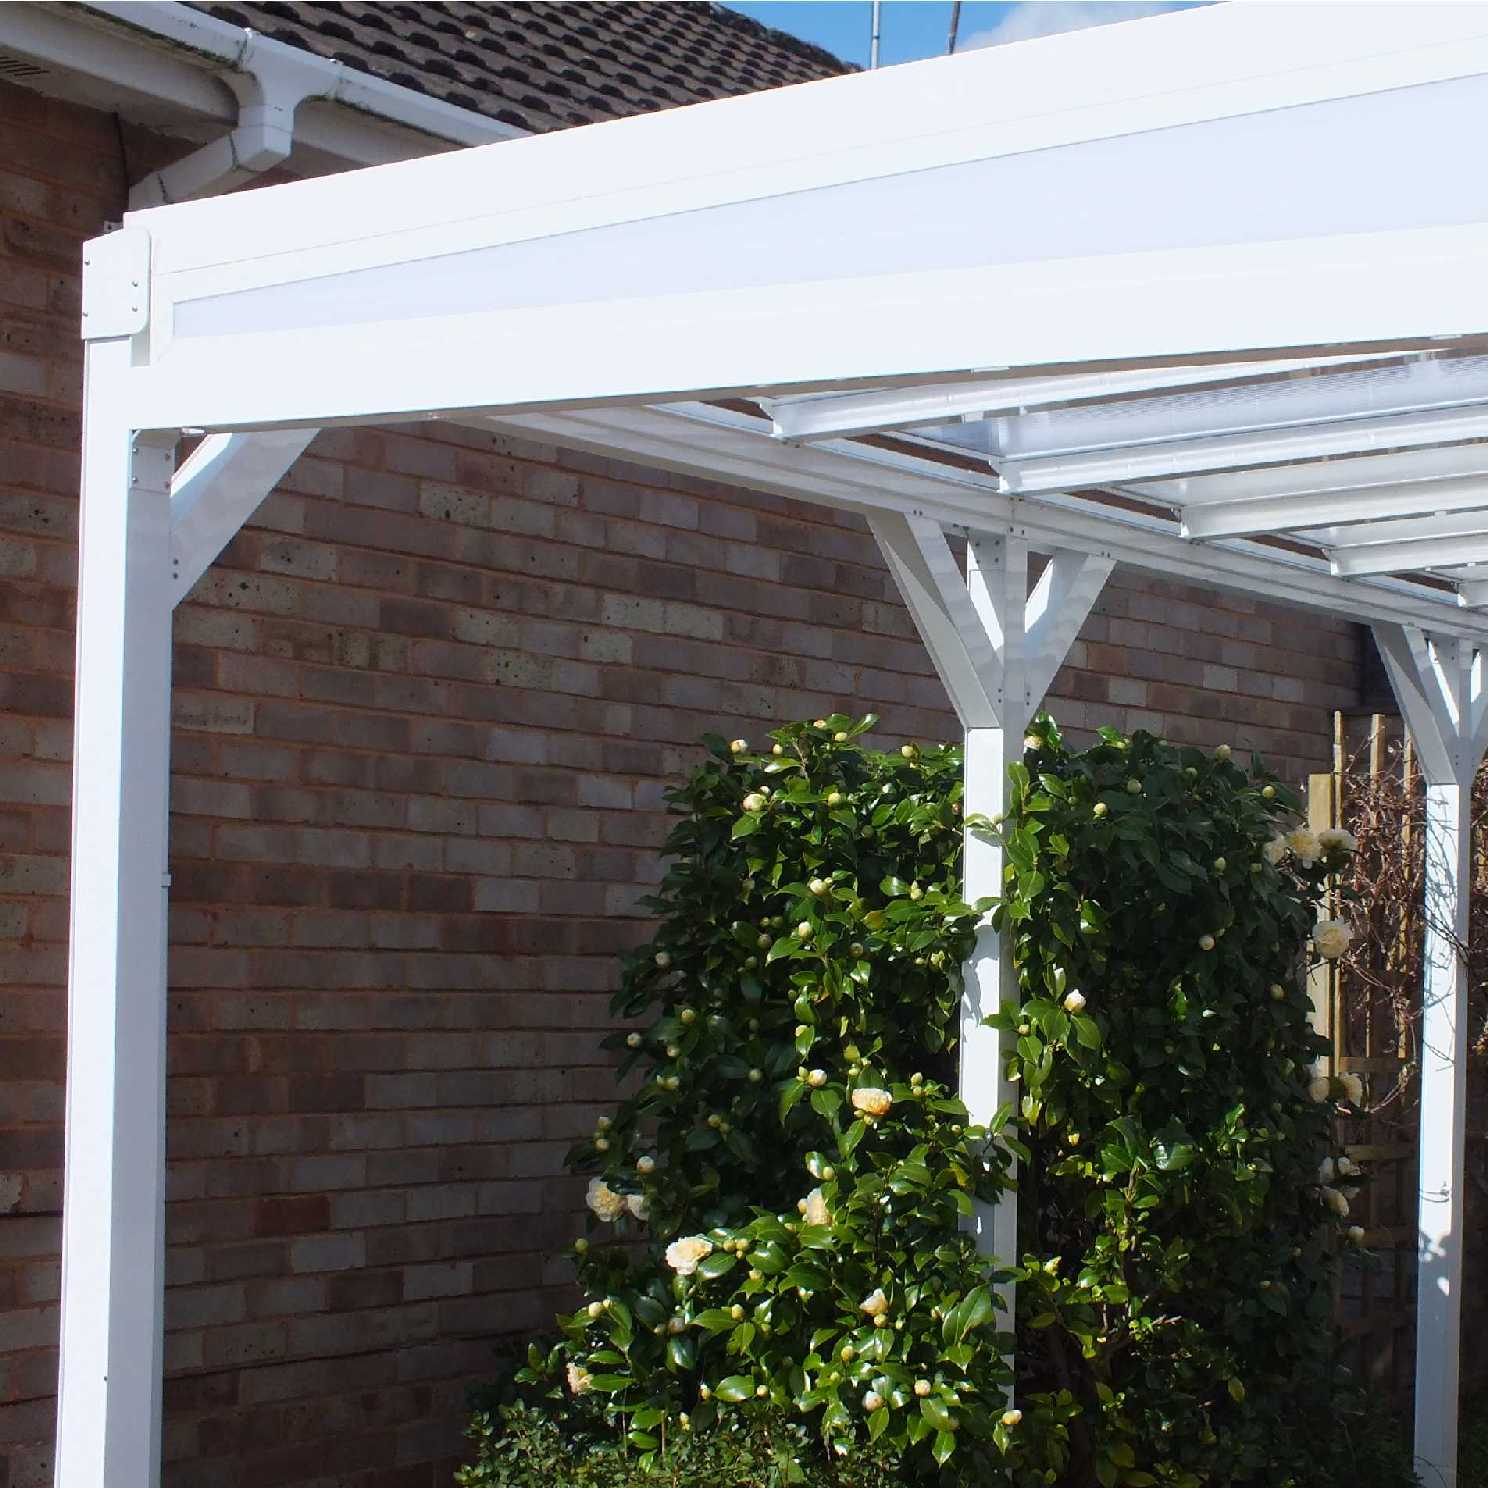 Omega Smart Lean-To Canopy with 16mm Polycarbonate Glazing - 7.4m (W) x 2.0m (P), (4) Supporting Posts from Omega Build